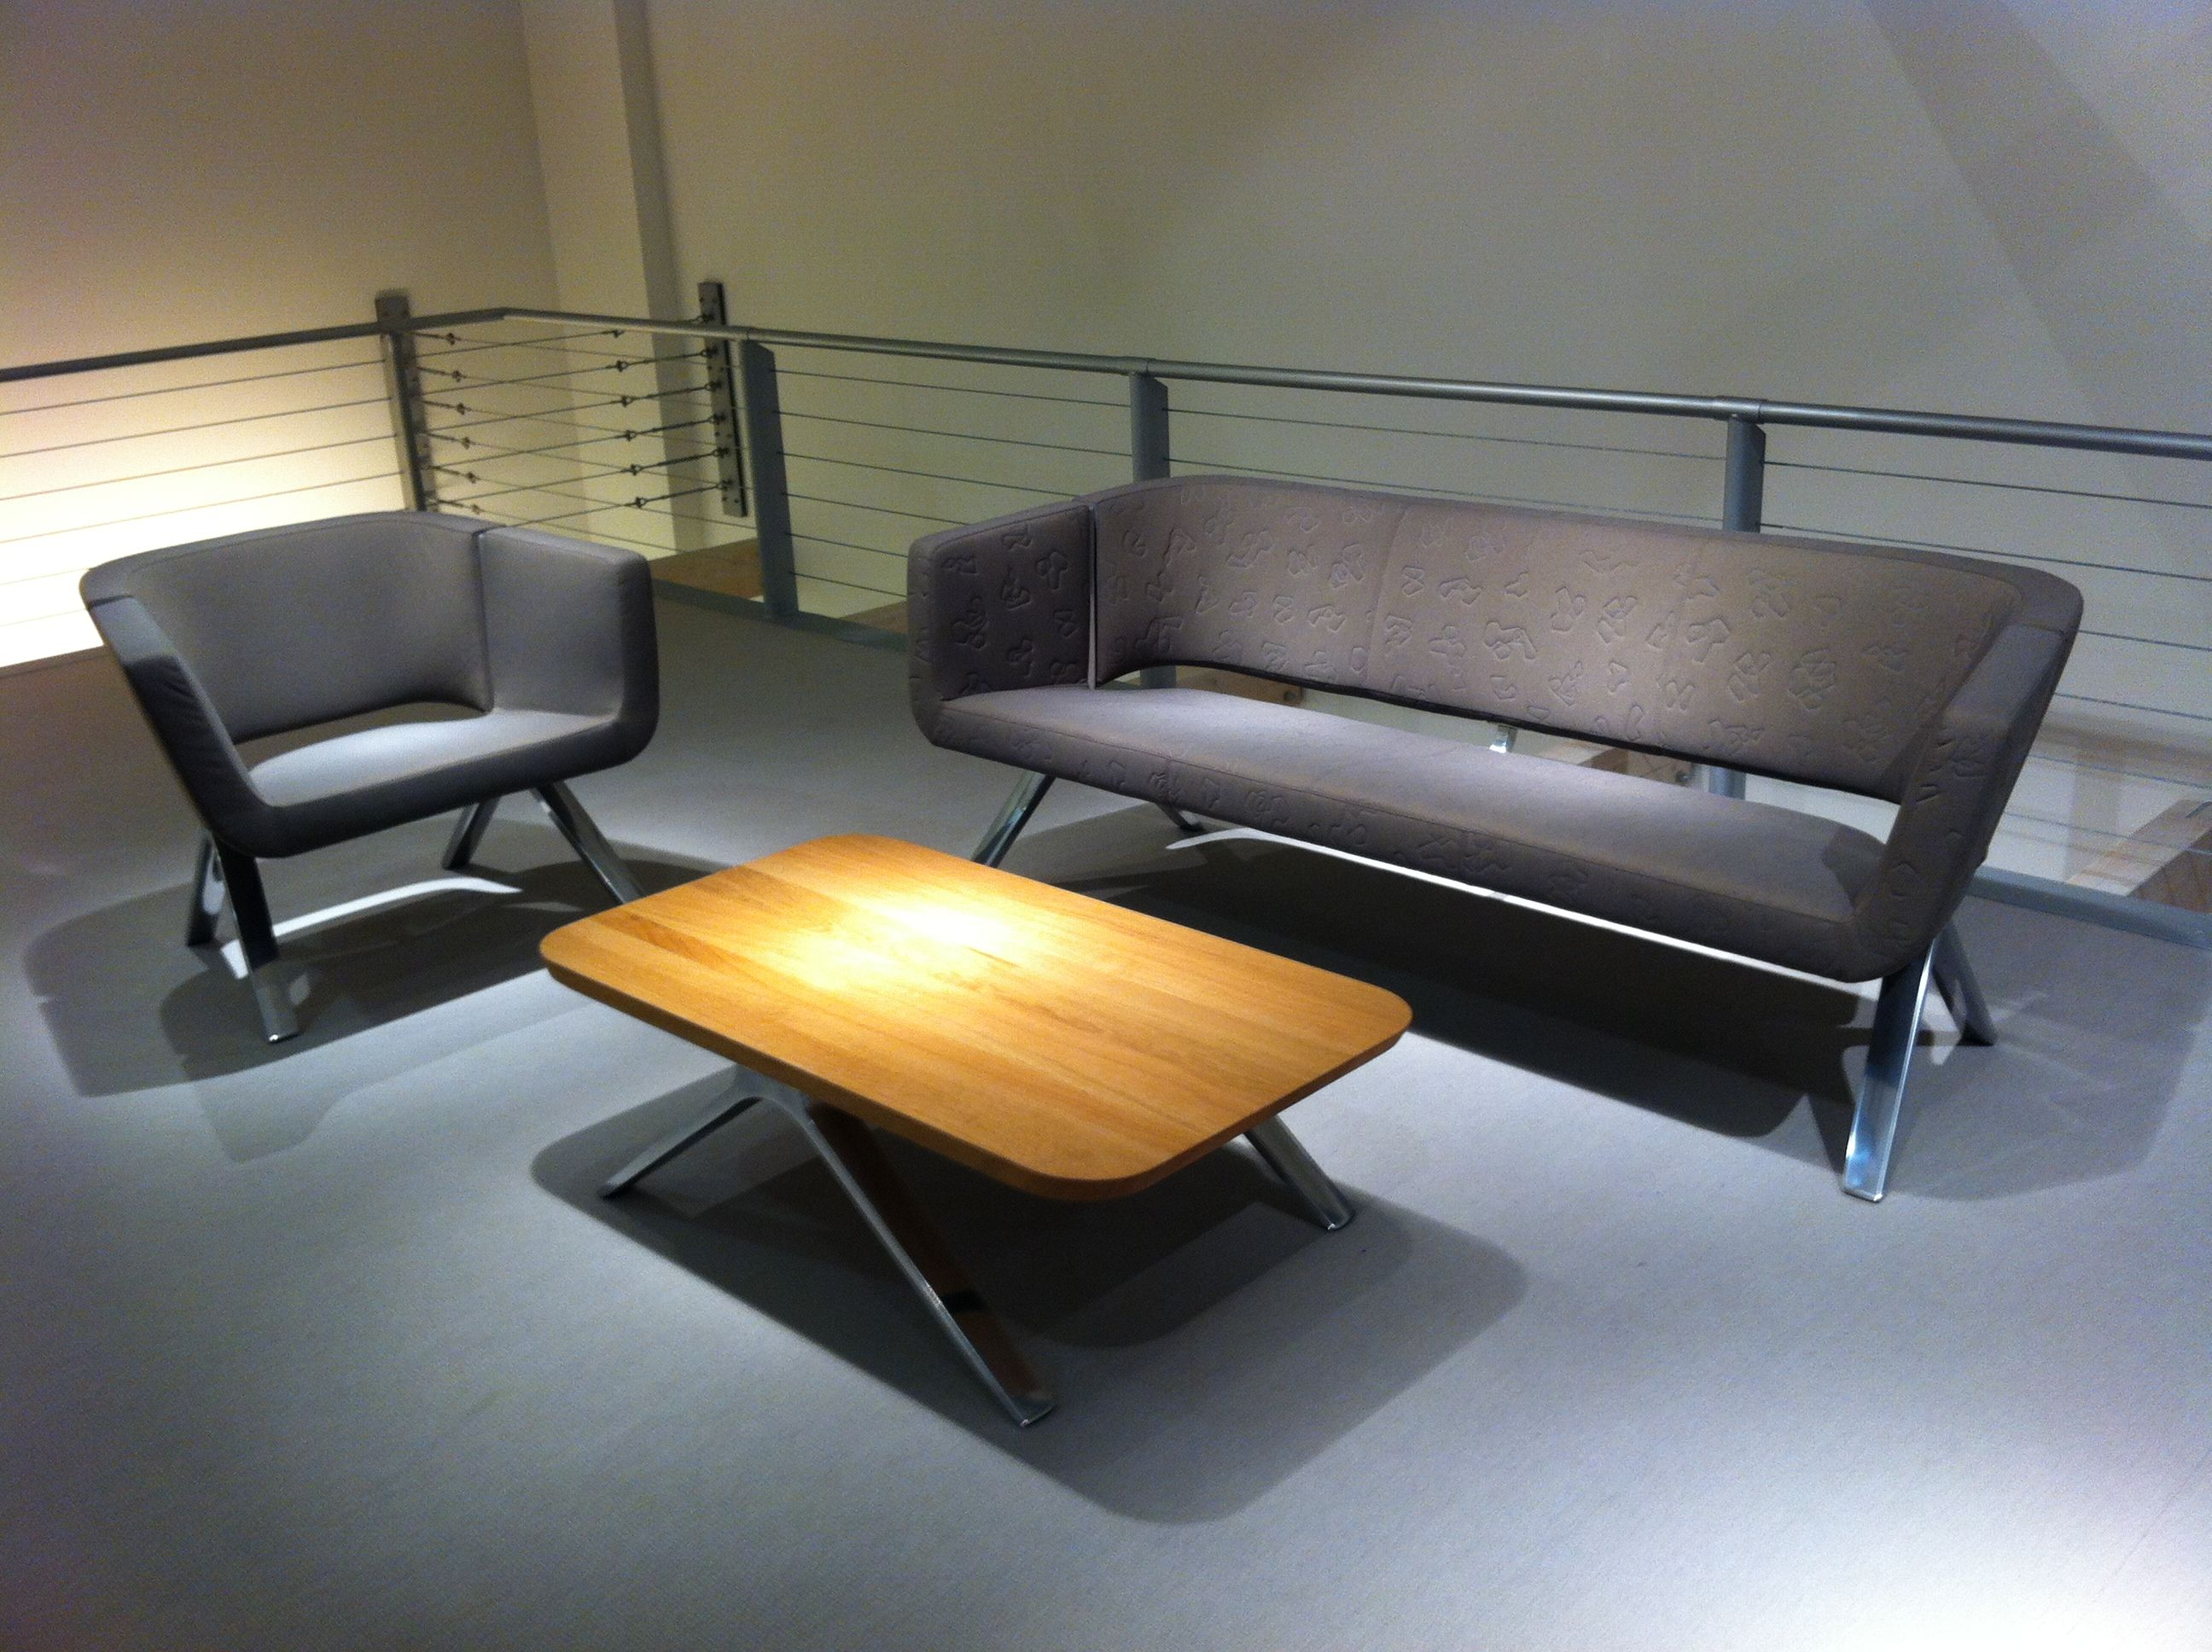 Series 8080 seating in cooperation with Porsche Design ...